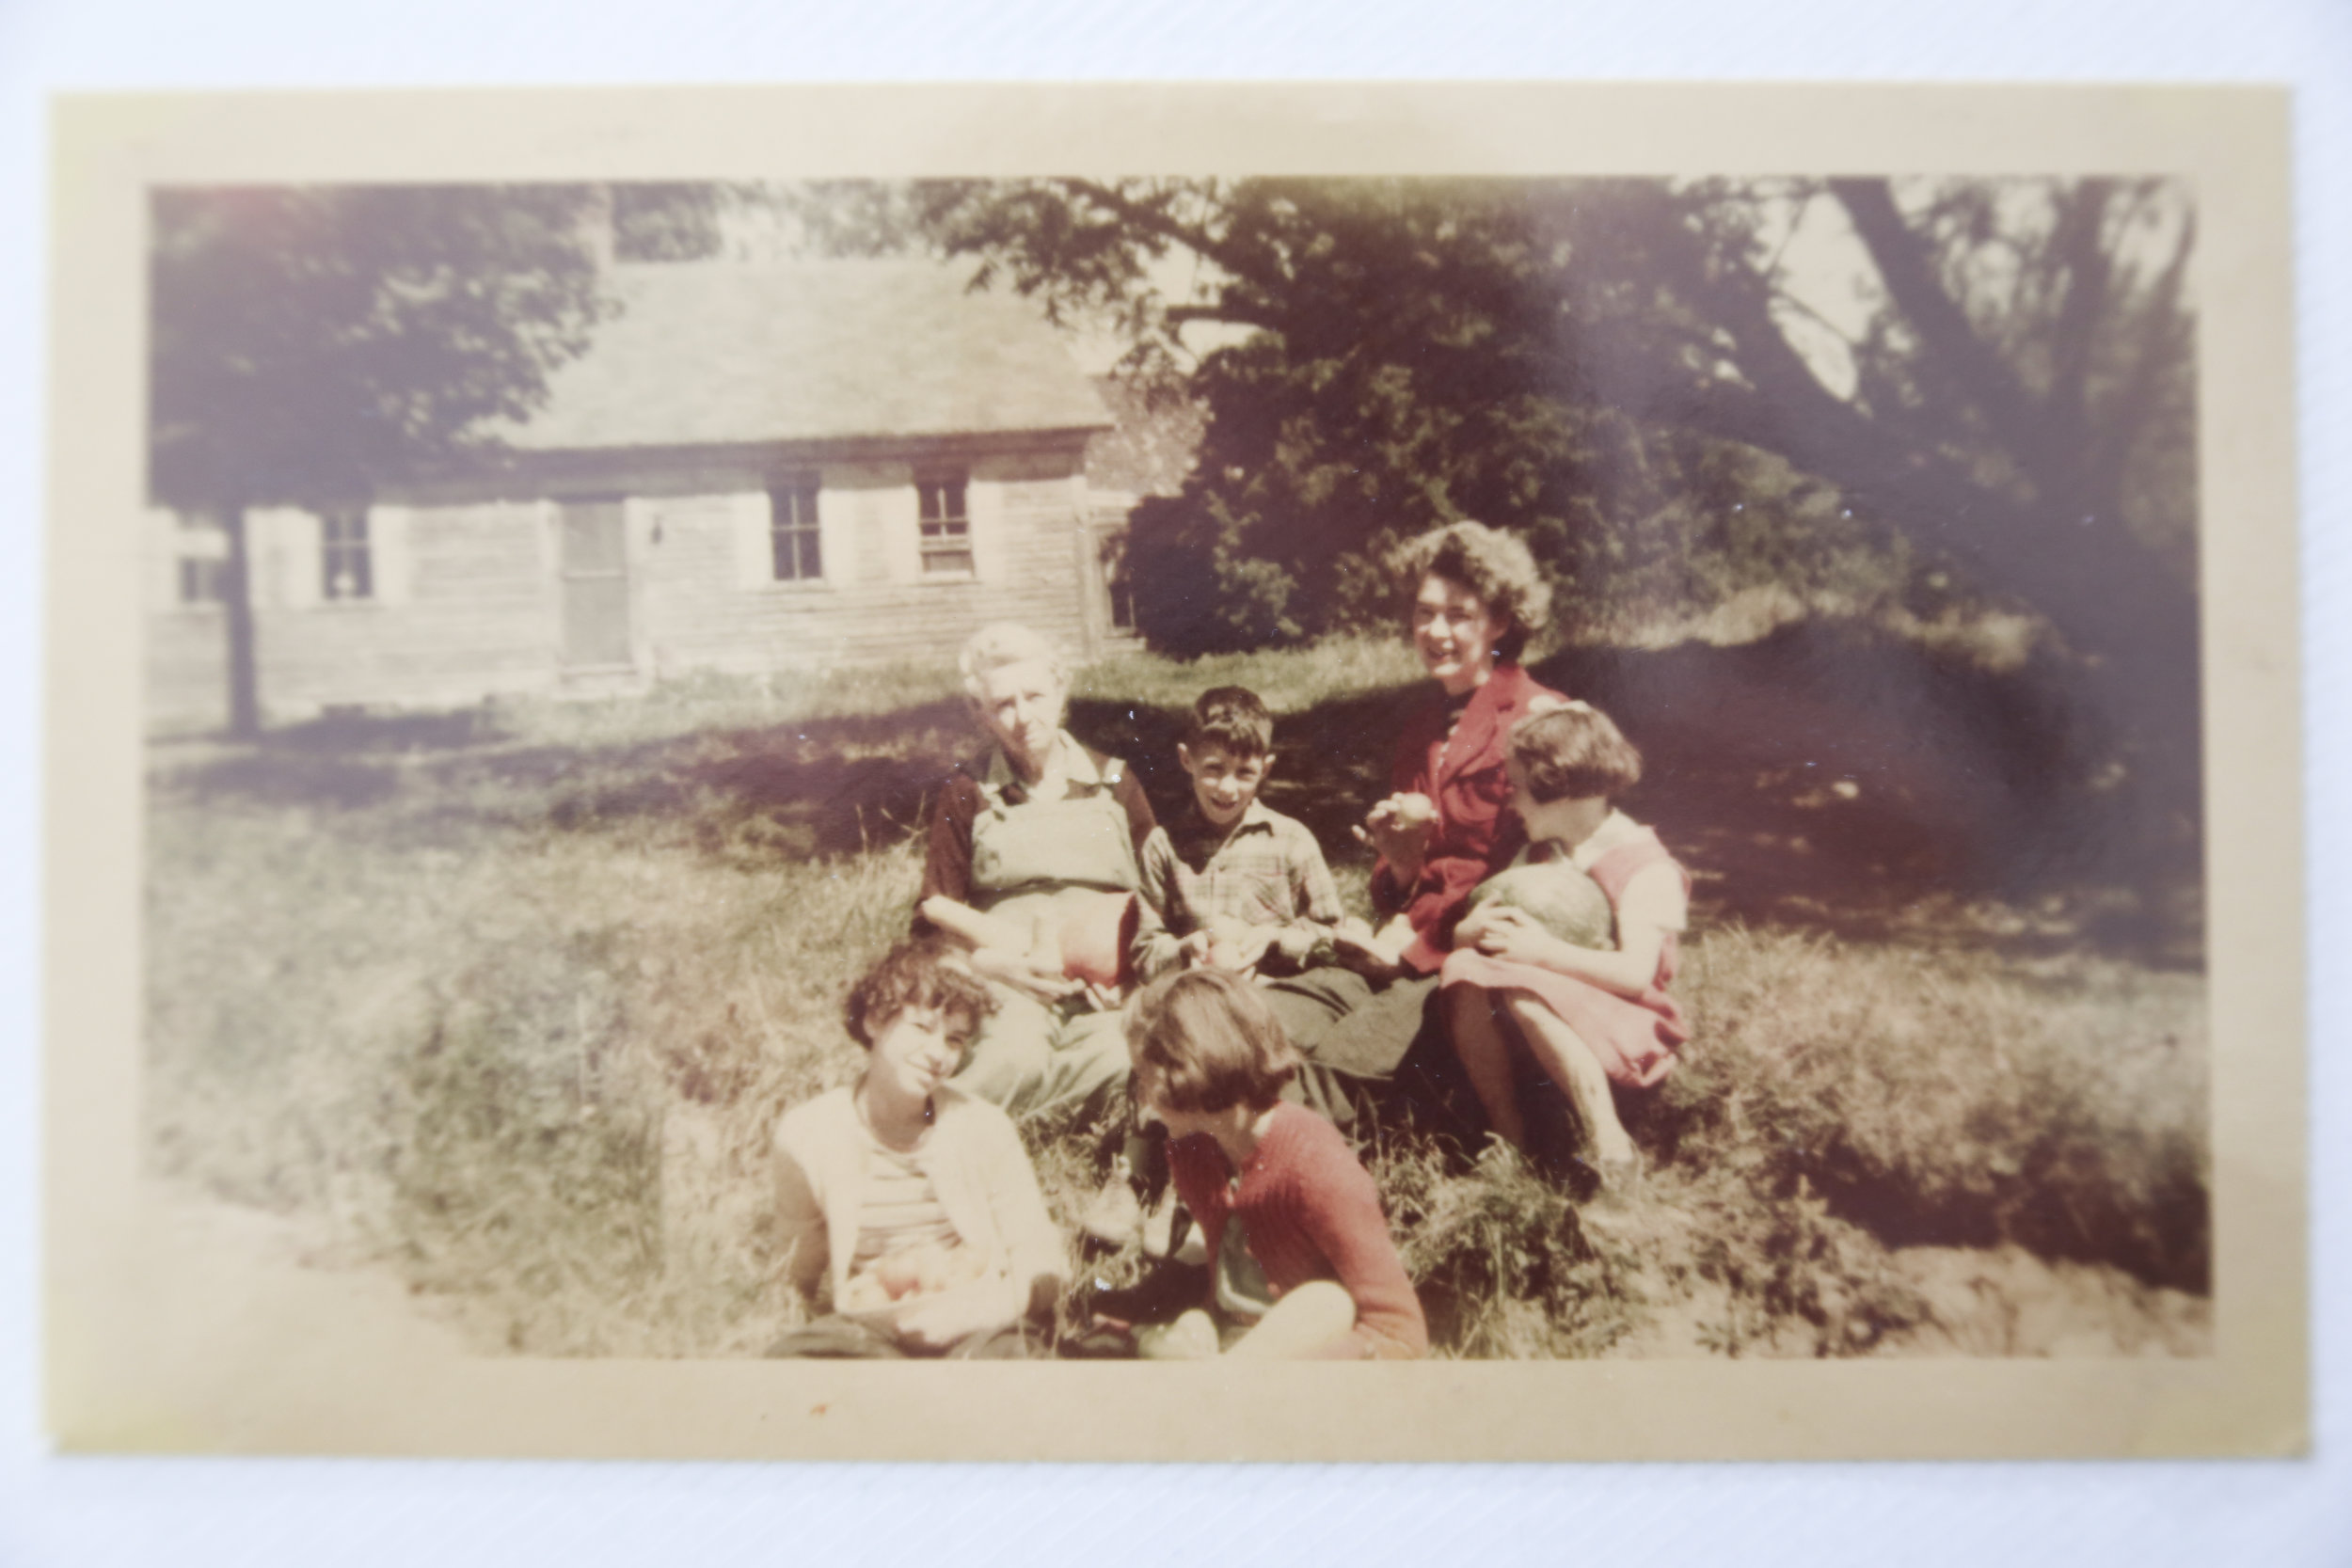 My Great Great Grandmother, my Grandfather in the middle next to my Great Grandmother. Aunt Ginny is one of these girls too, along with my Great Aunt Evelyn.